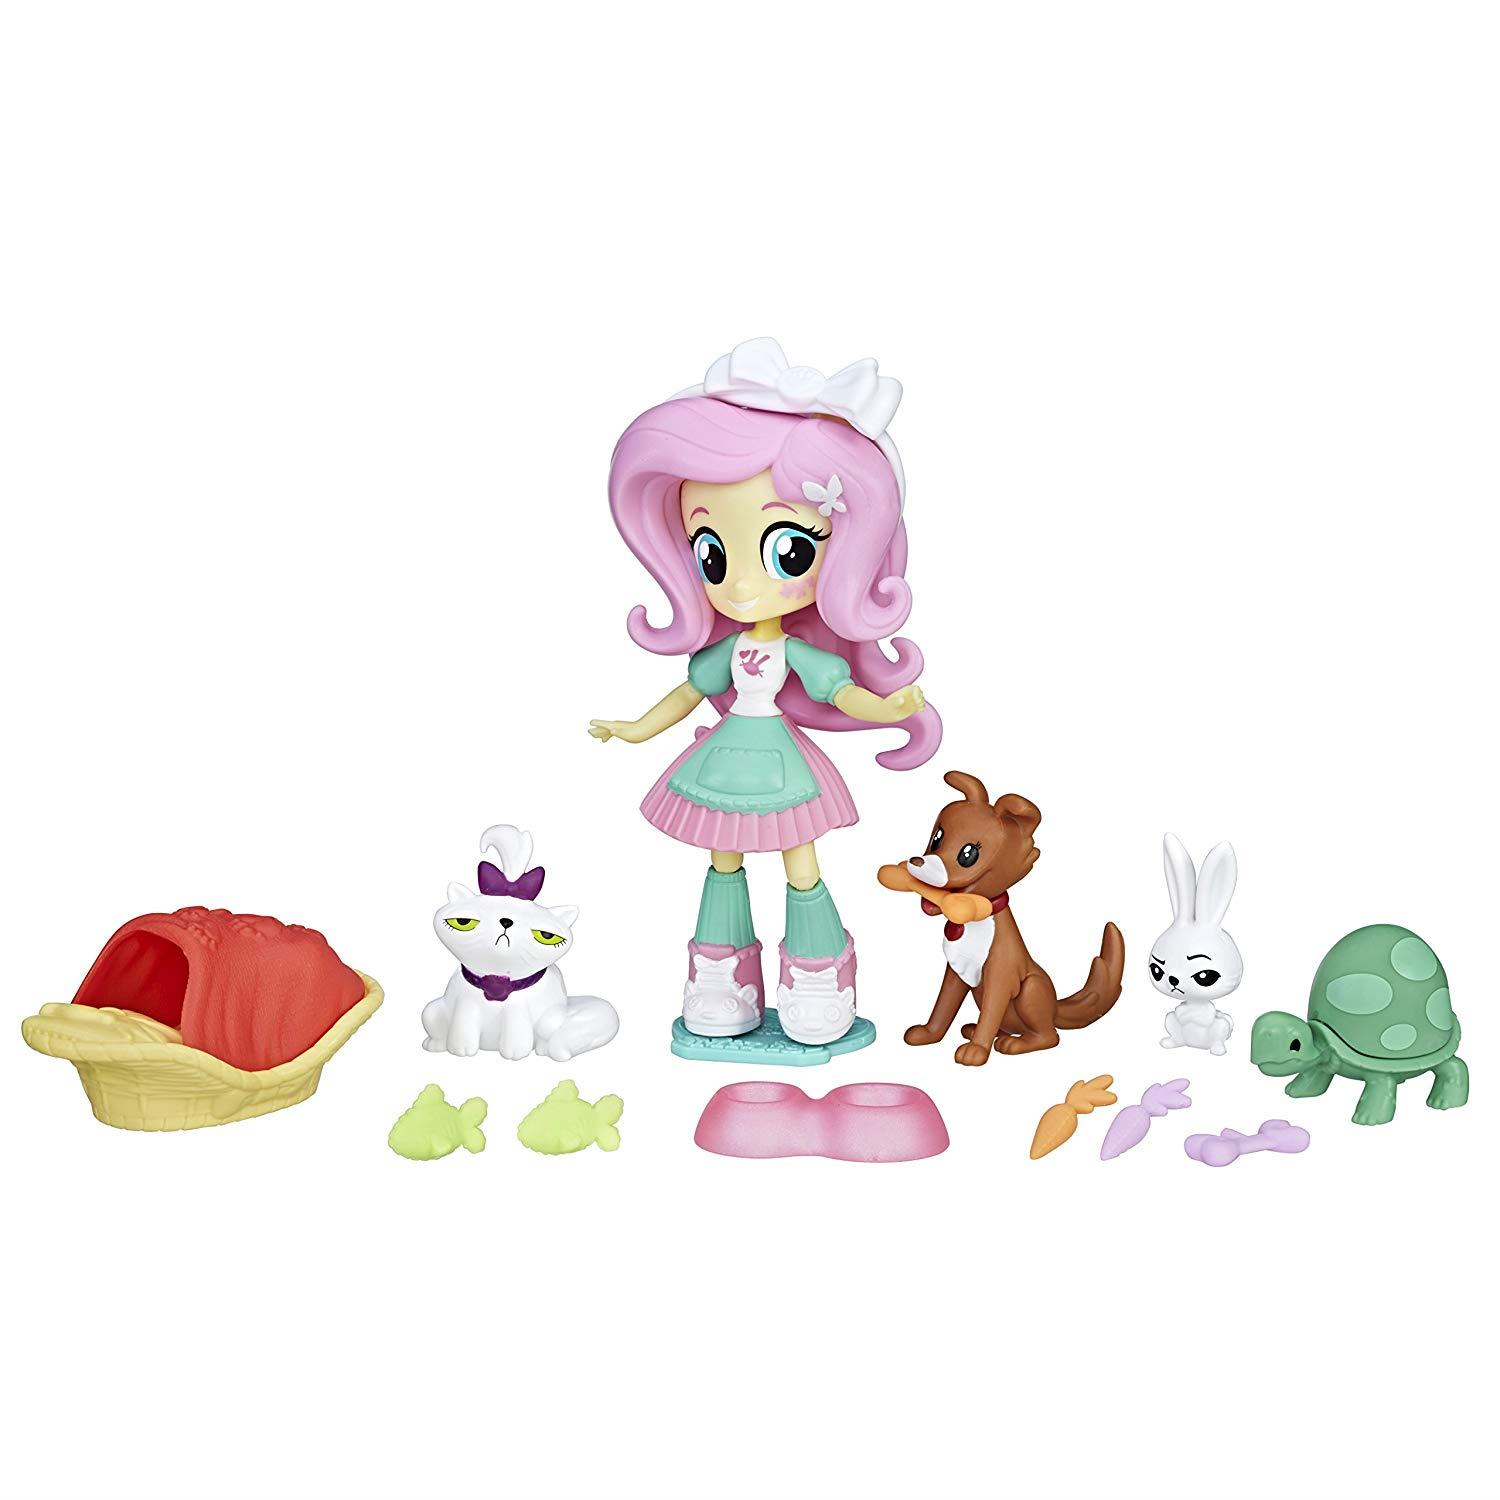 My Little Pony B9495es0 Equestria Girls Fluttershy Pet Spa Set 5010993390489 Ebay